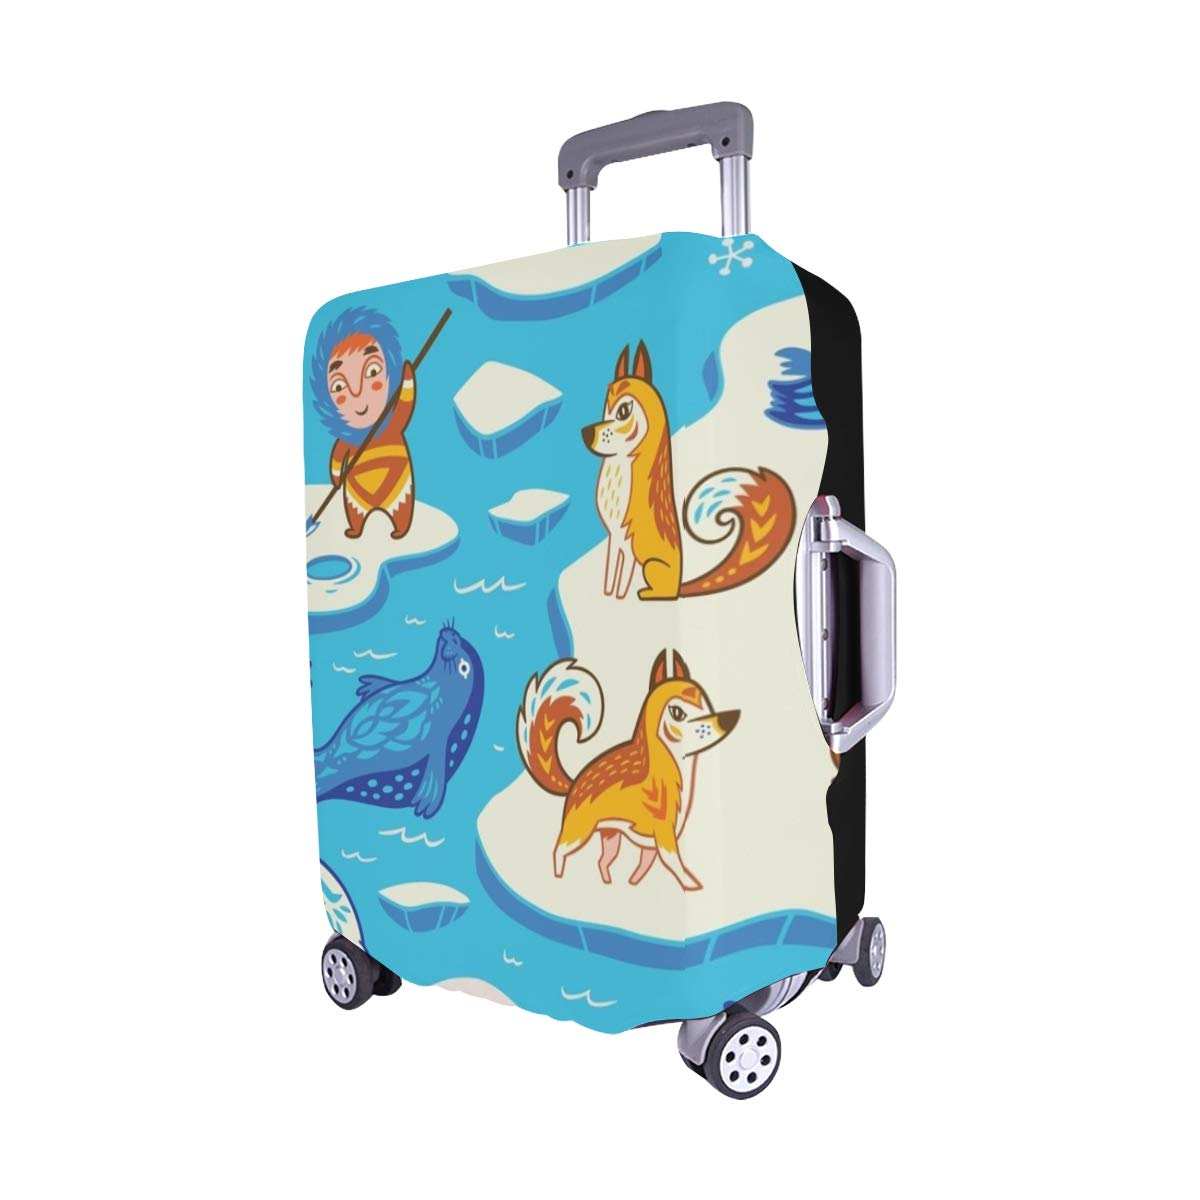 English Alphabet Animals Spandex Trolley Case Travel Luggage Protector Suitcase Cover 28.5 X 20.5 Inch